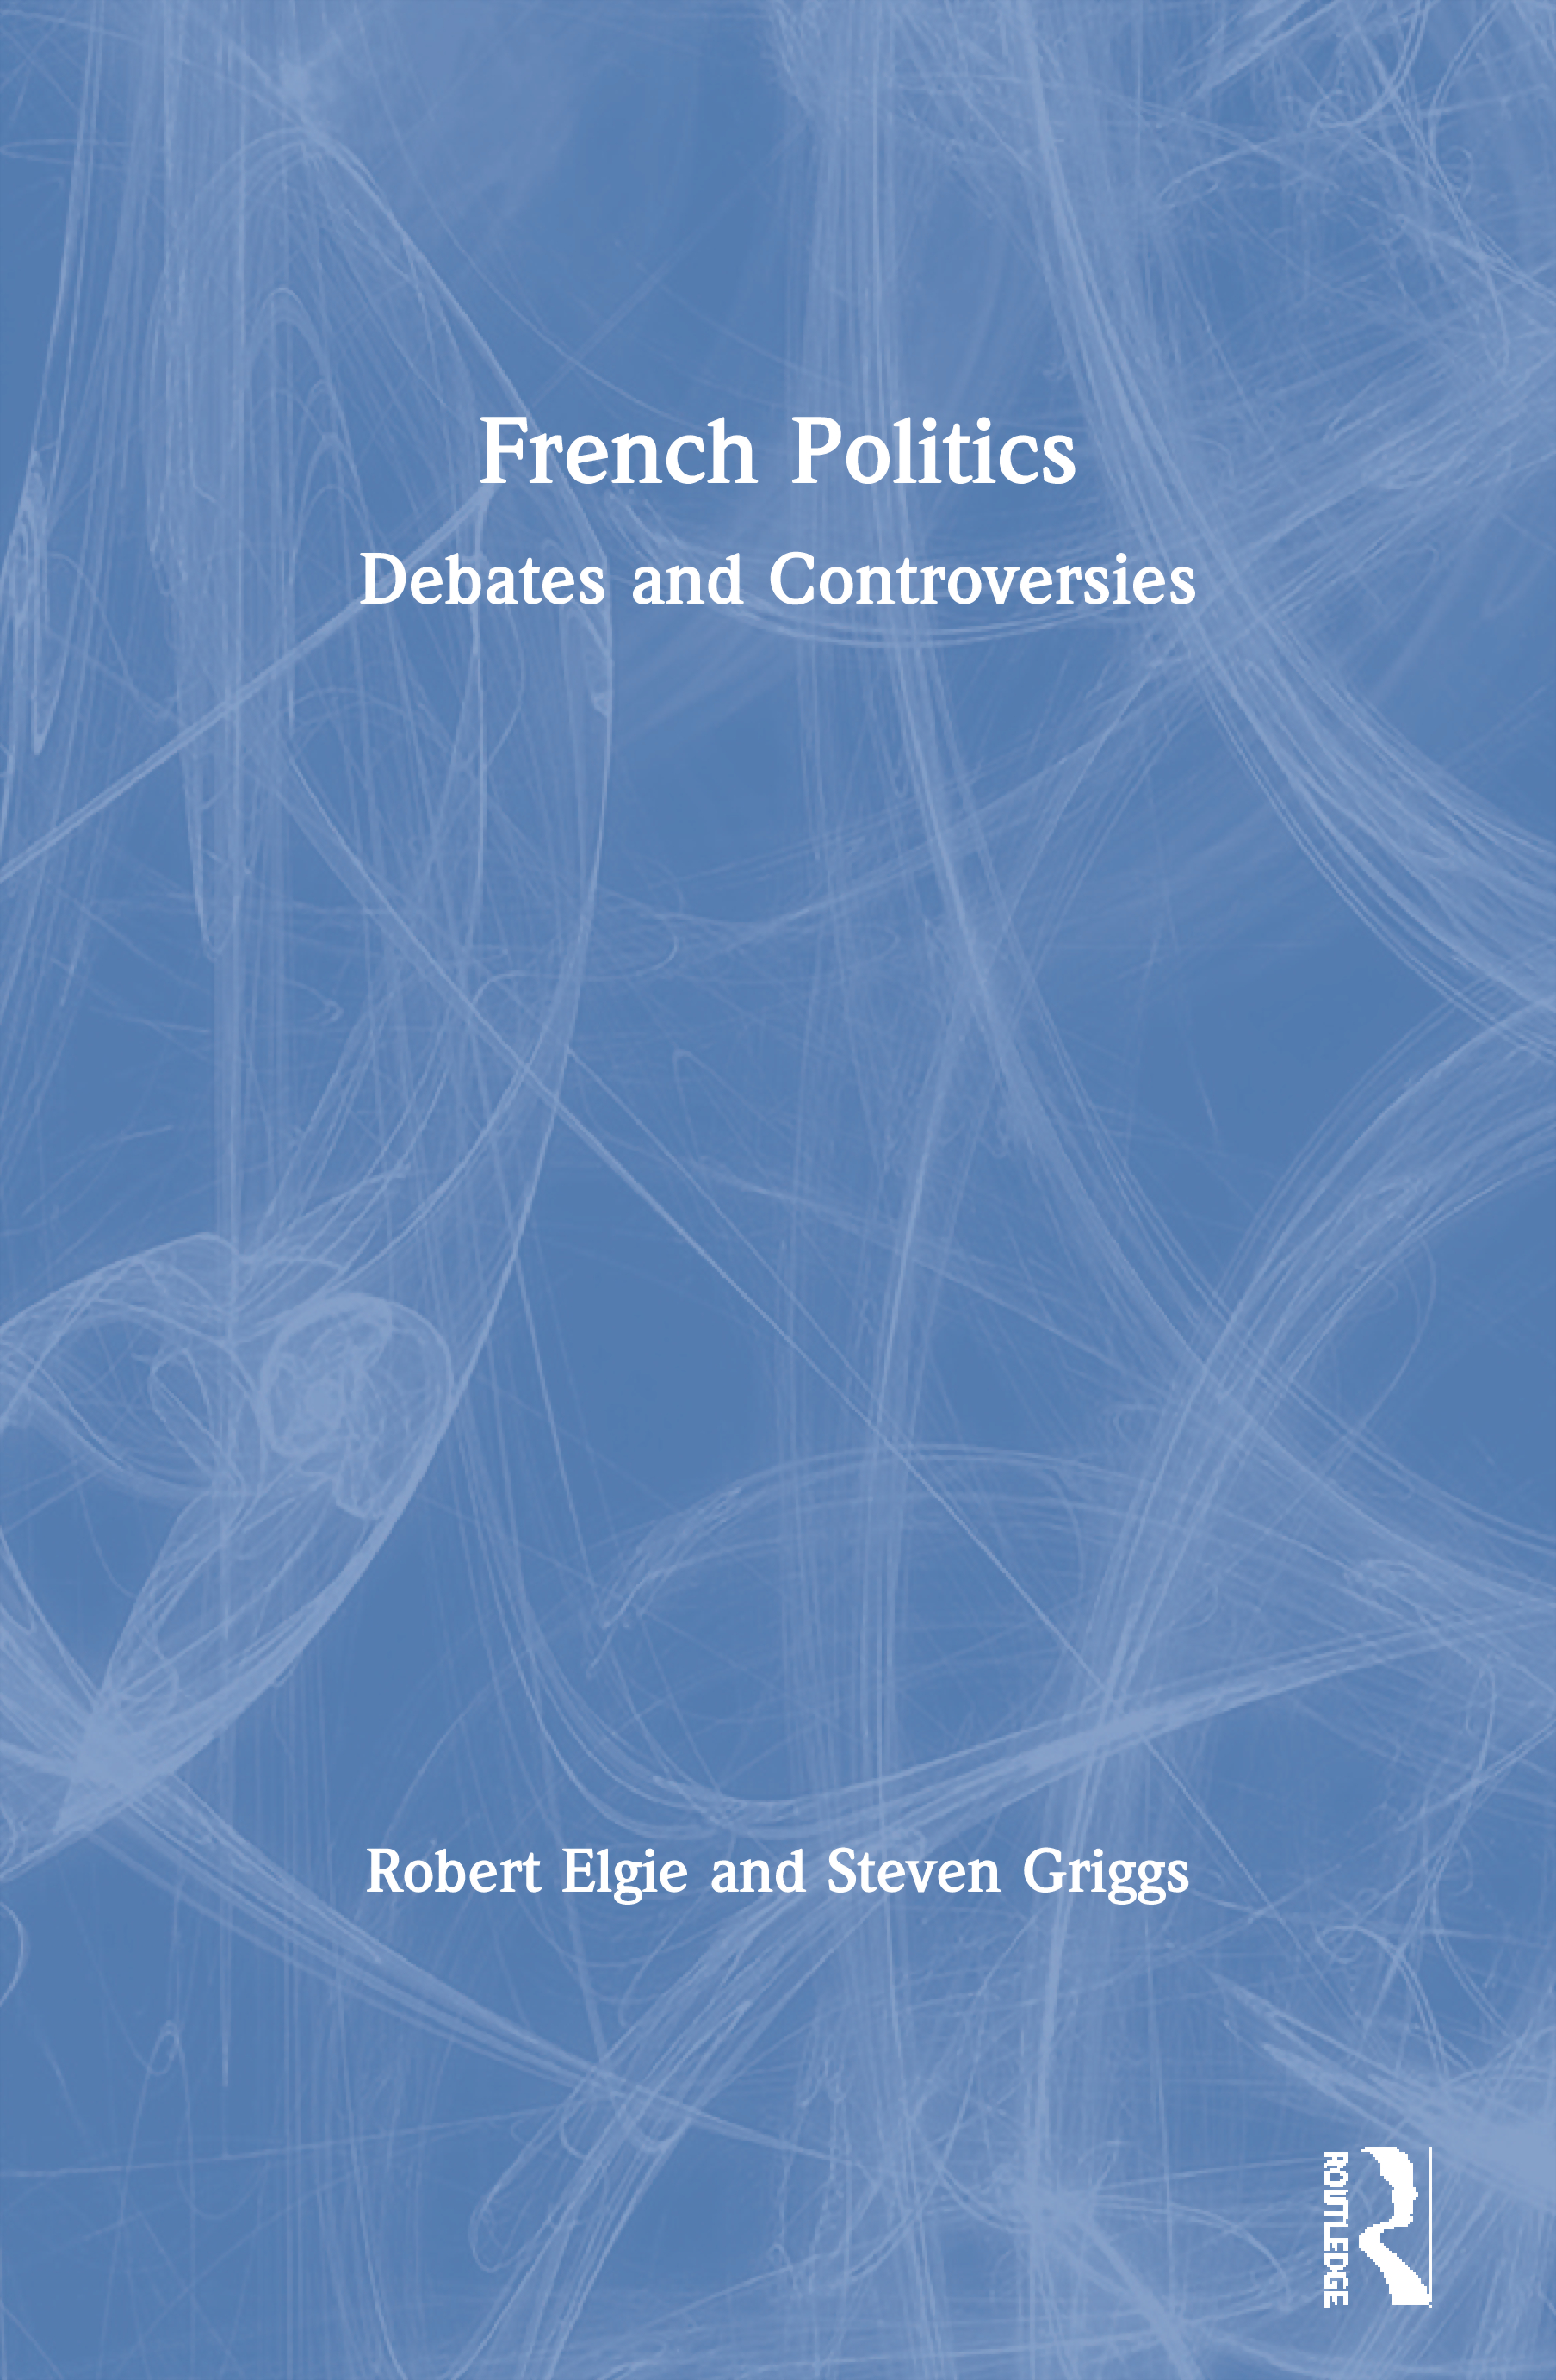 French Politics: Debates and Controversies, 1st Edition (Paperback) book cover